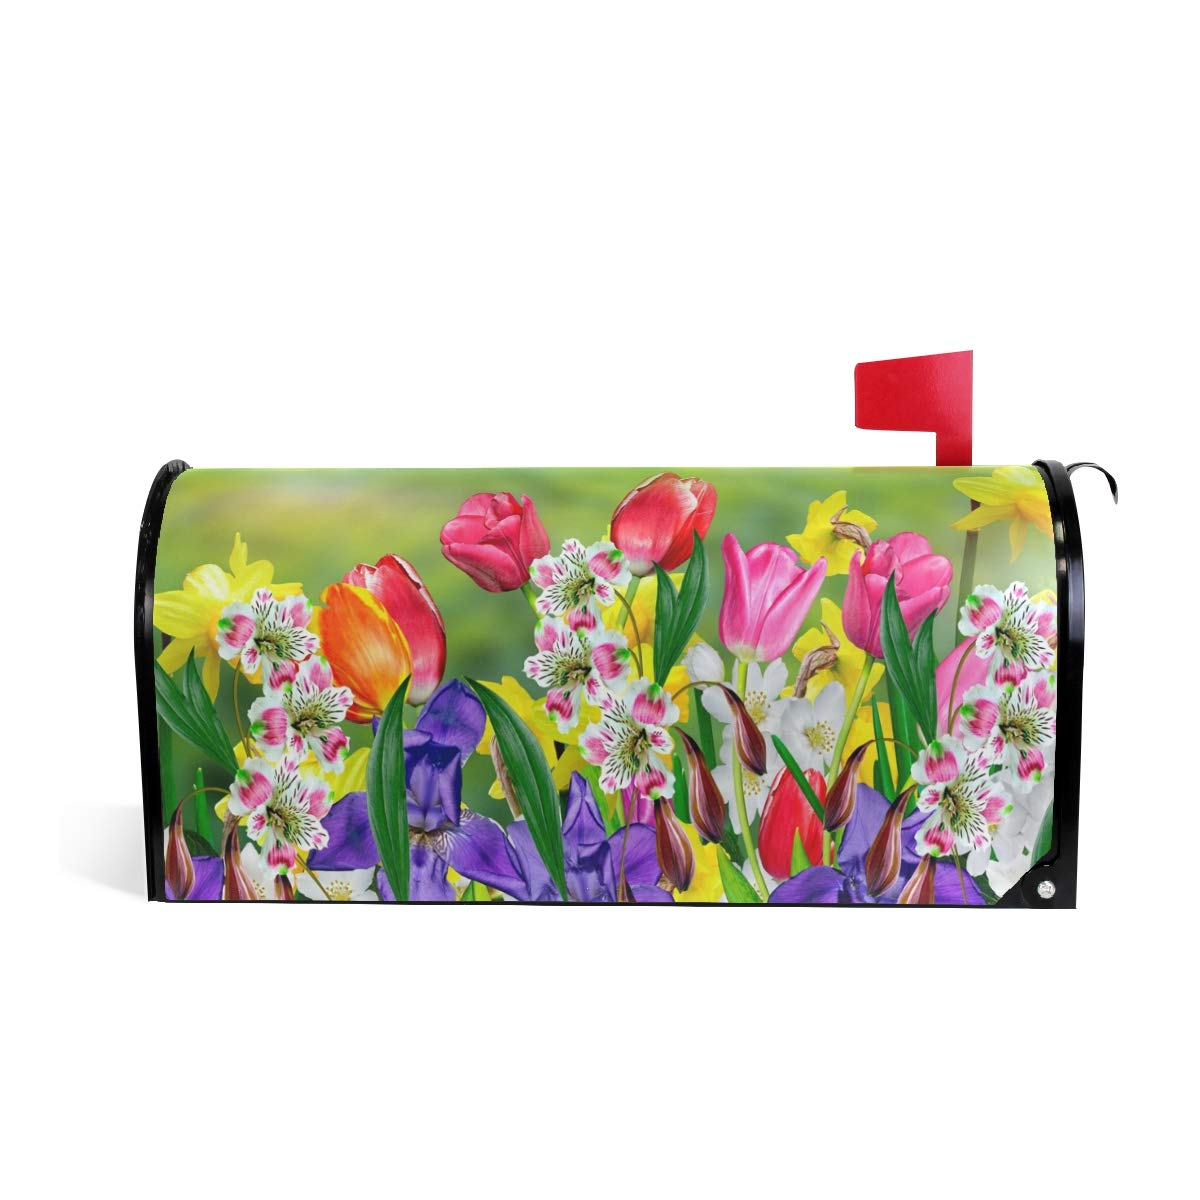 WOOR Spring Flowers Daffodils and Tulips Magnetic Mailbox Cover Oversized-20.8''x 25.5''